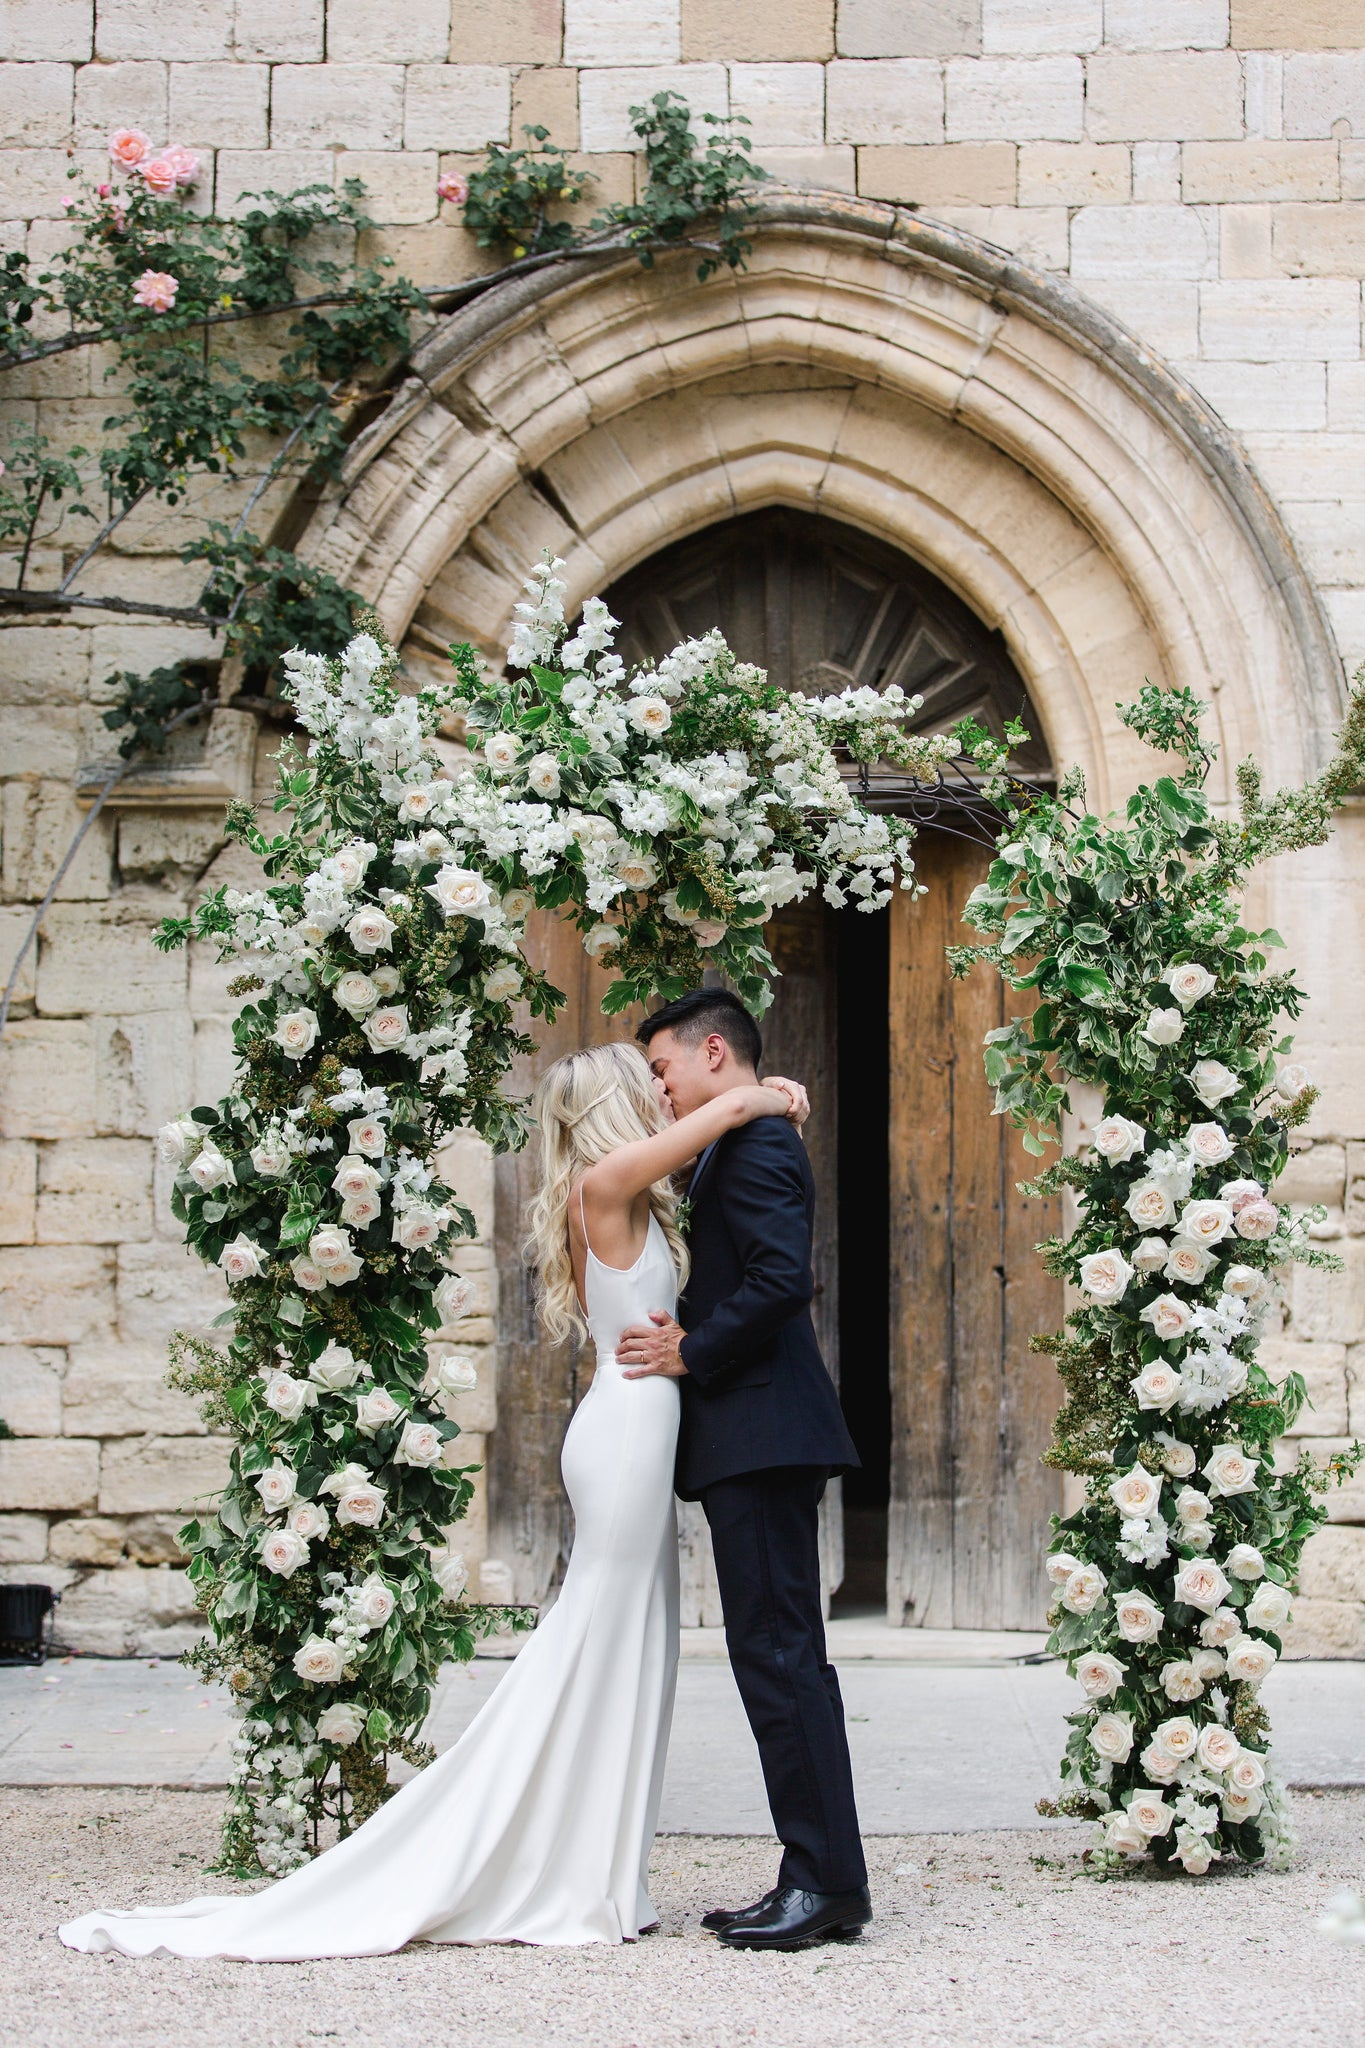 Katie Dean + Jon Tam Destination wedding, Provence, France Wedding, ceremony